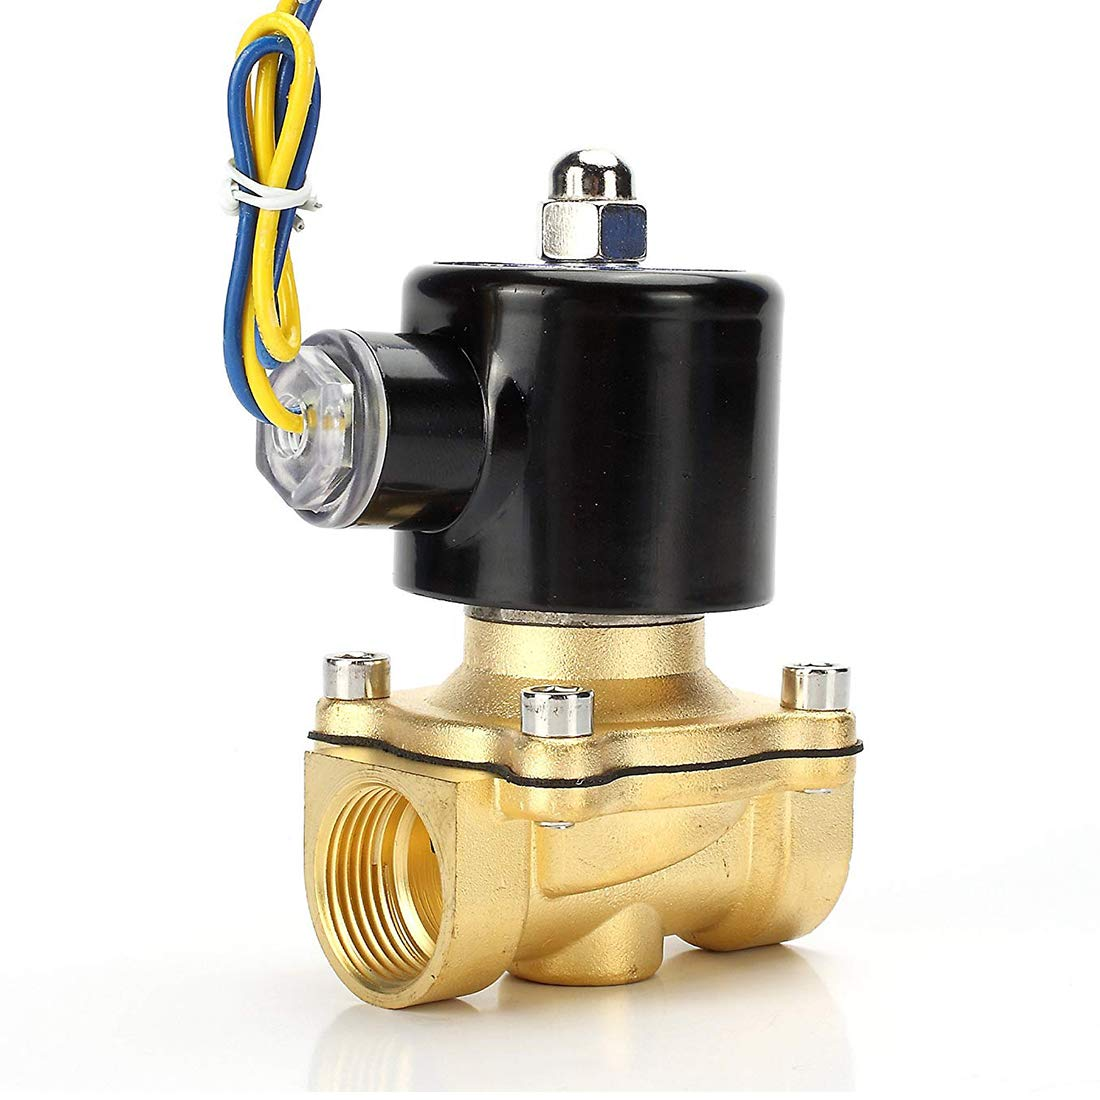 Beduan Brass Electric Solenoid Valve, 1/2'' 12V, Normally Colsed Valve for Air Water Gas Fuel Oil by beduan